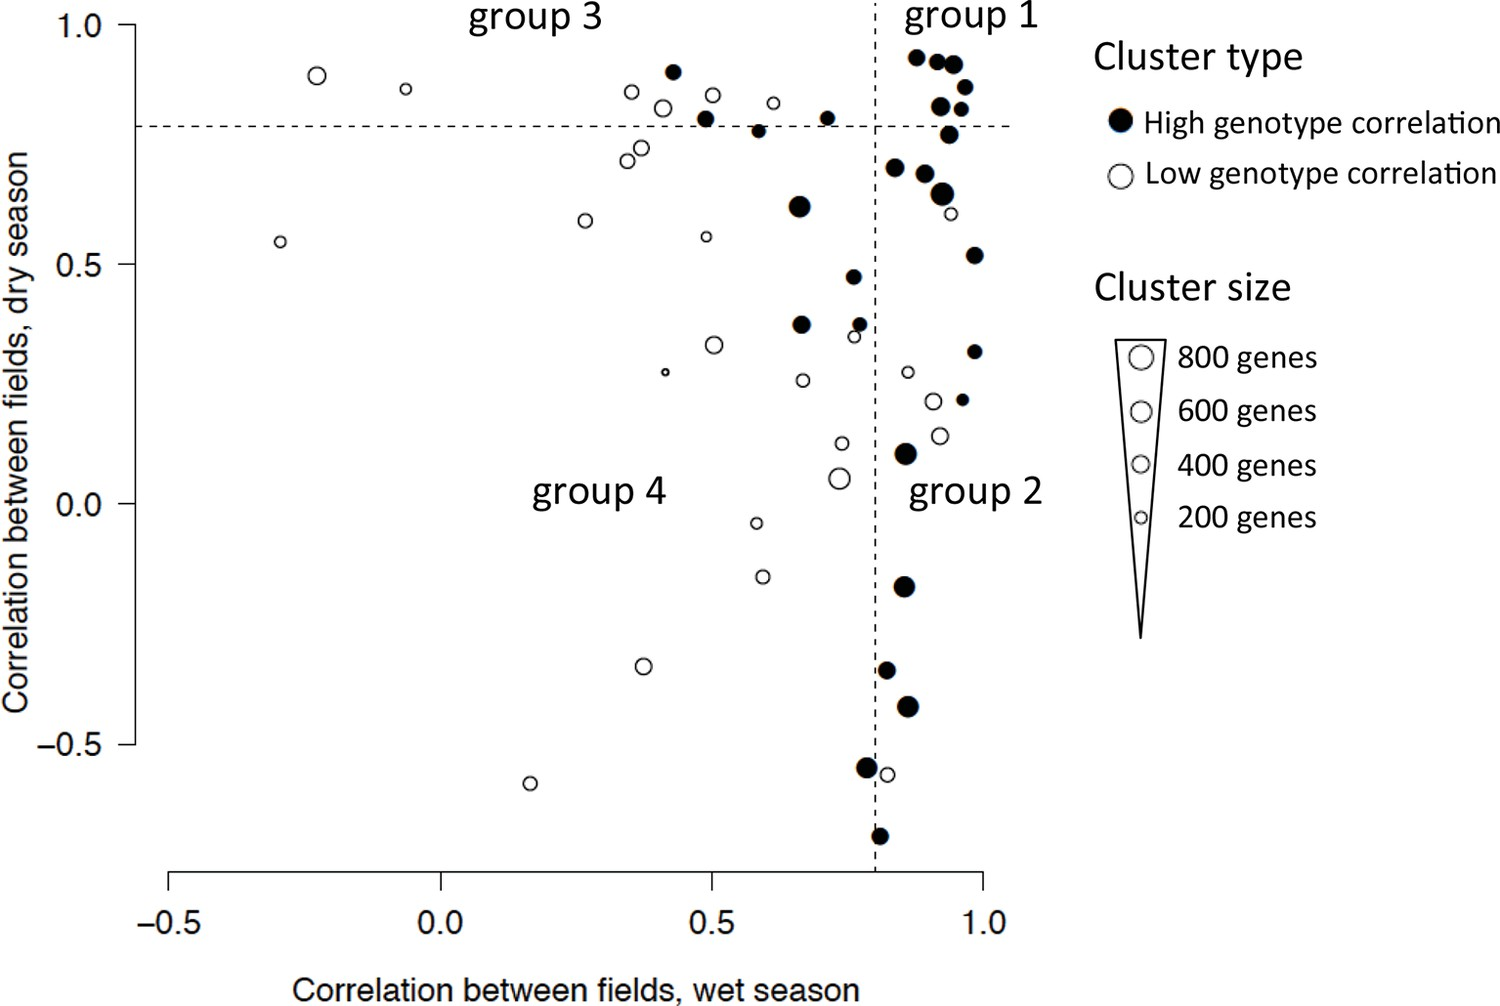 Multiple Abiotic Stimuli Are Integrated In The Regulation Of Rice Basis Different Regulator Types Principles Genetic Circuit Classification 53 Clusters From Two Season Analysis Based On Field Correlation Dry And Wet Seasons